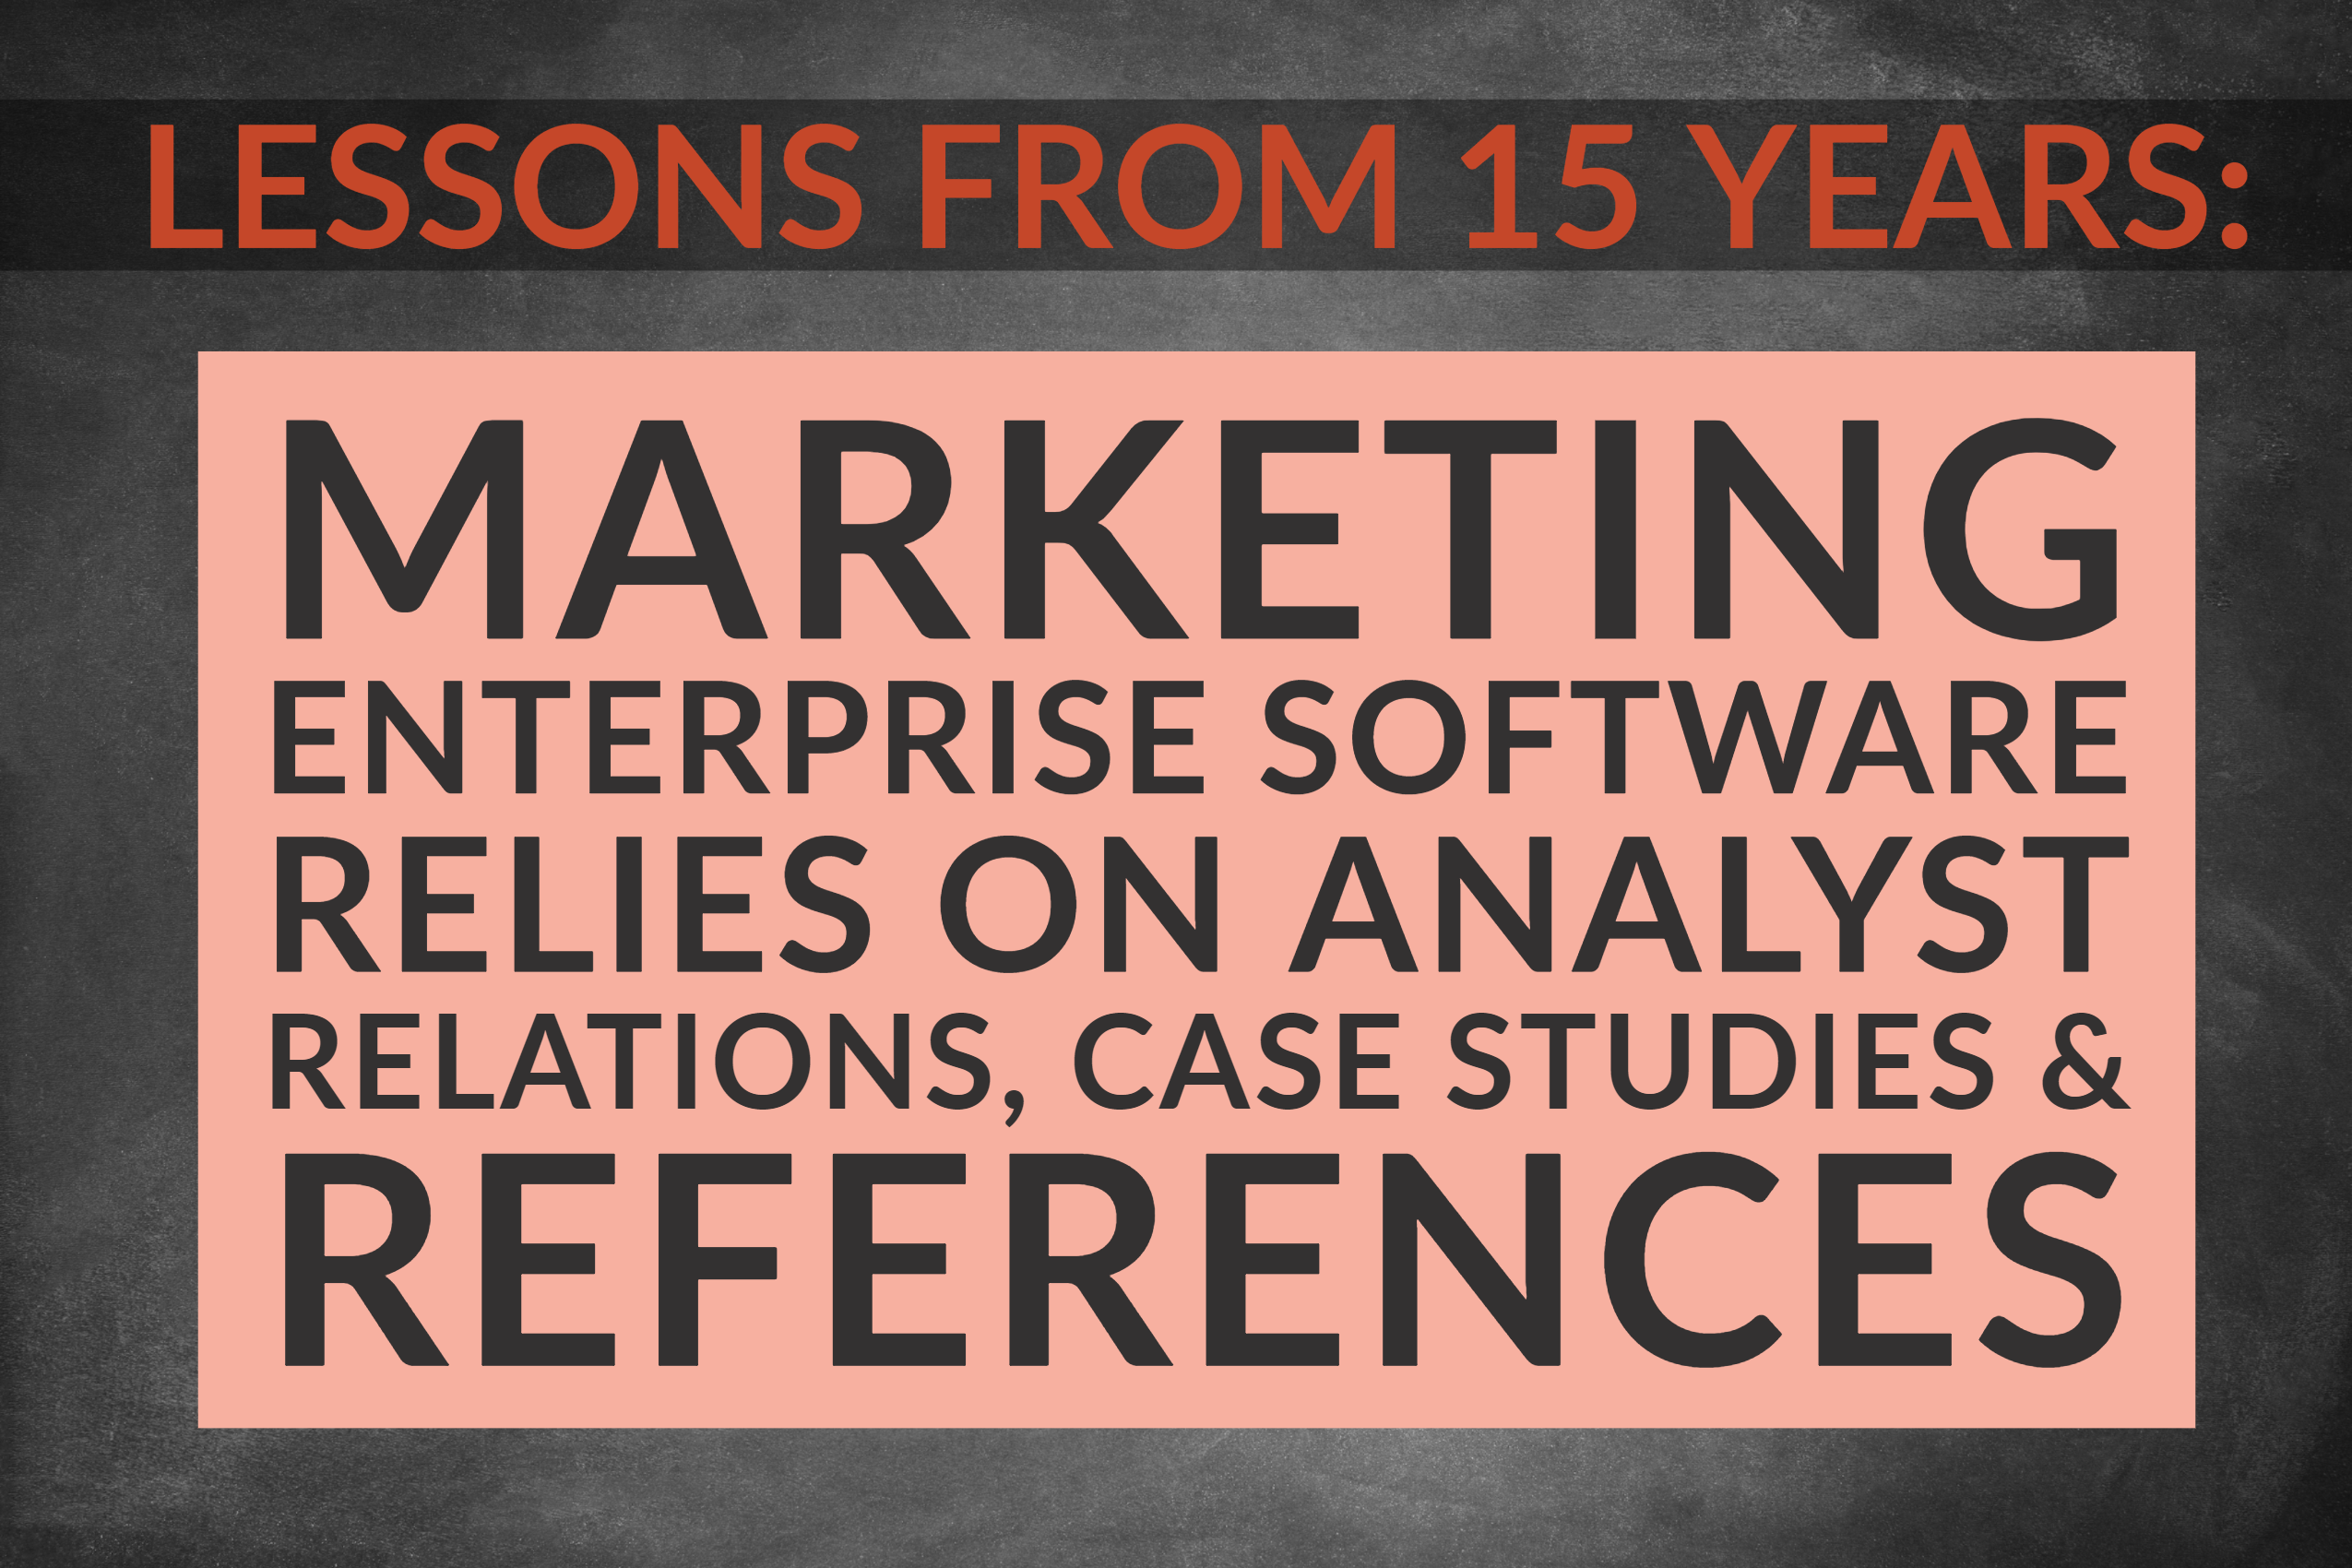 Lessons From 15 Years_ Marketing Enterprise Software Relies On Analyst Relations, Case Studies & References